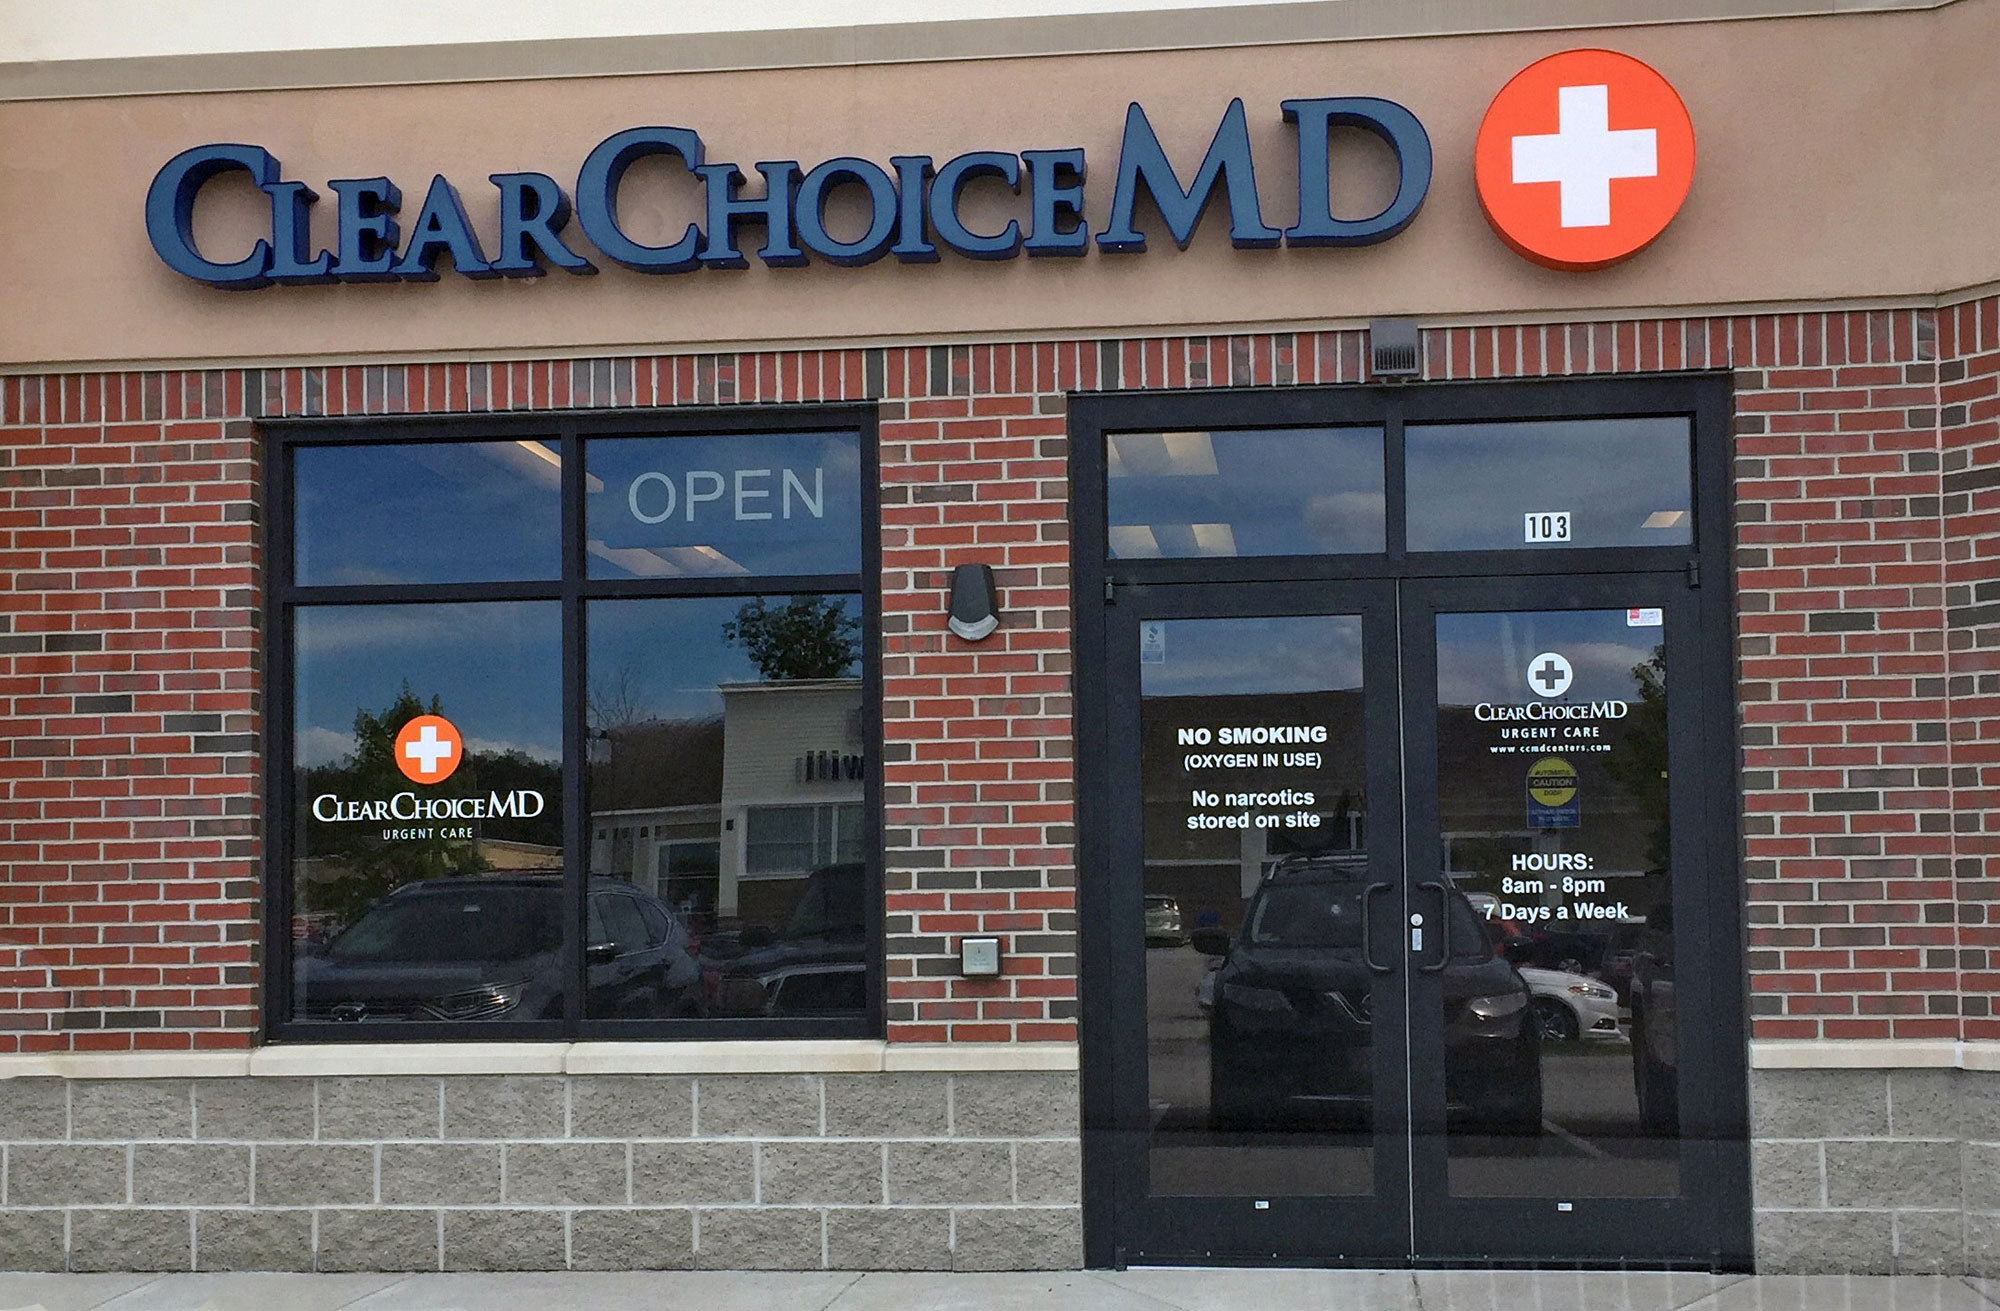 ClearChoiceMD Urgent Care - Portsmouth, NH - Urgent Care Solv in Portsmouth, NH